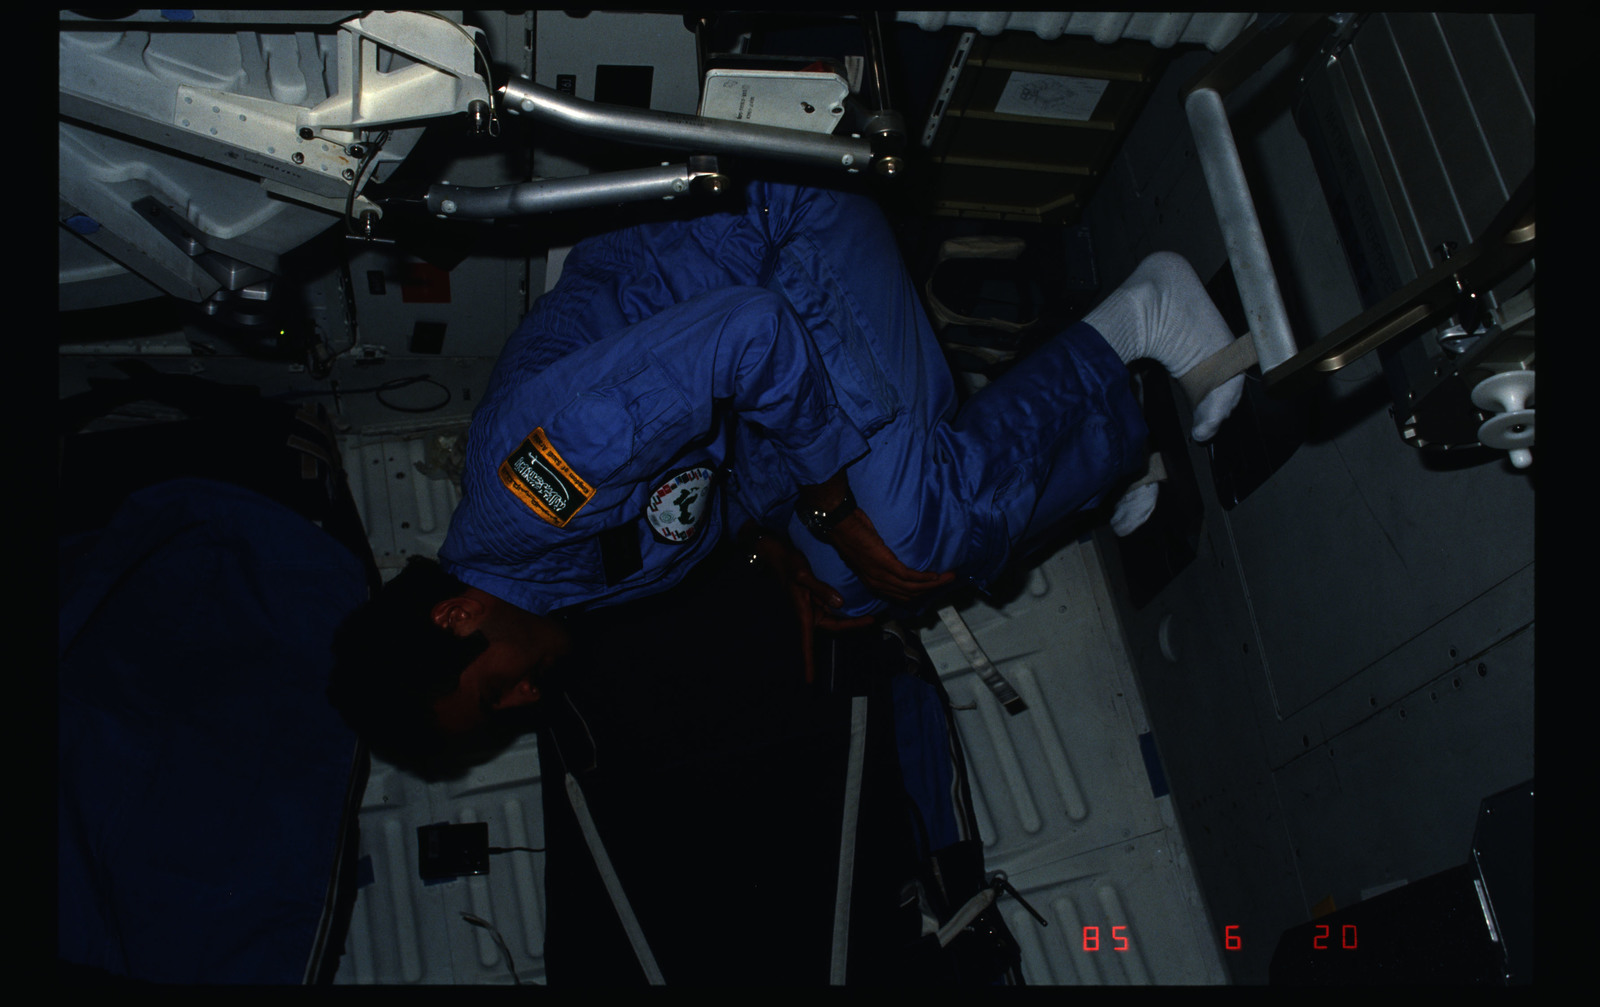 STS51G-09-016 - STS-51G - STS-51G crew activities - Al-Saud and Baudry on the middeck